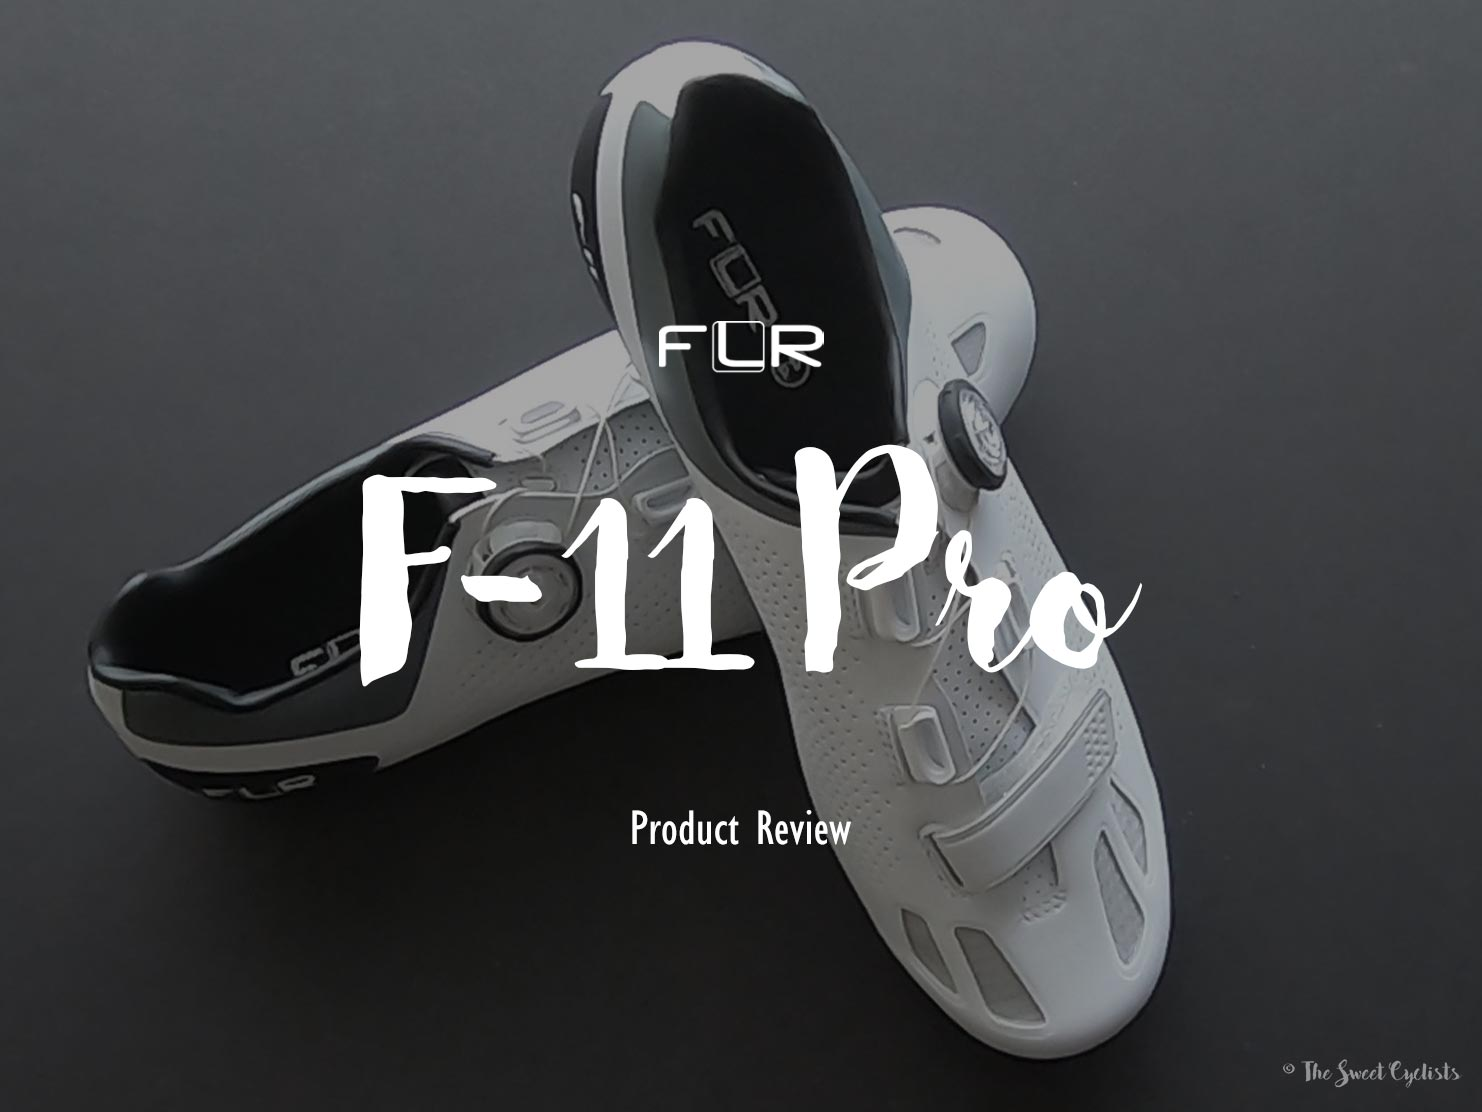 FLR F-11 shoes, premium features at a budget price